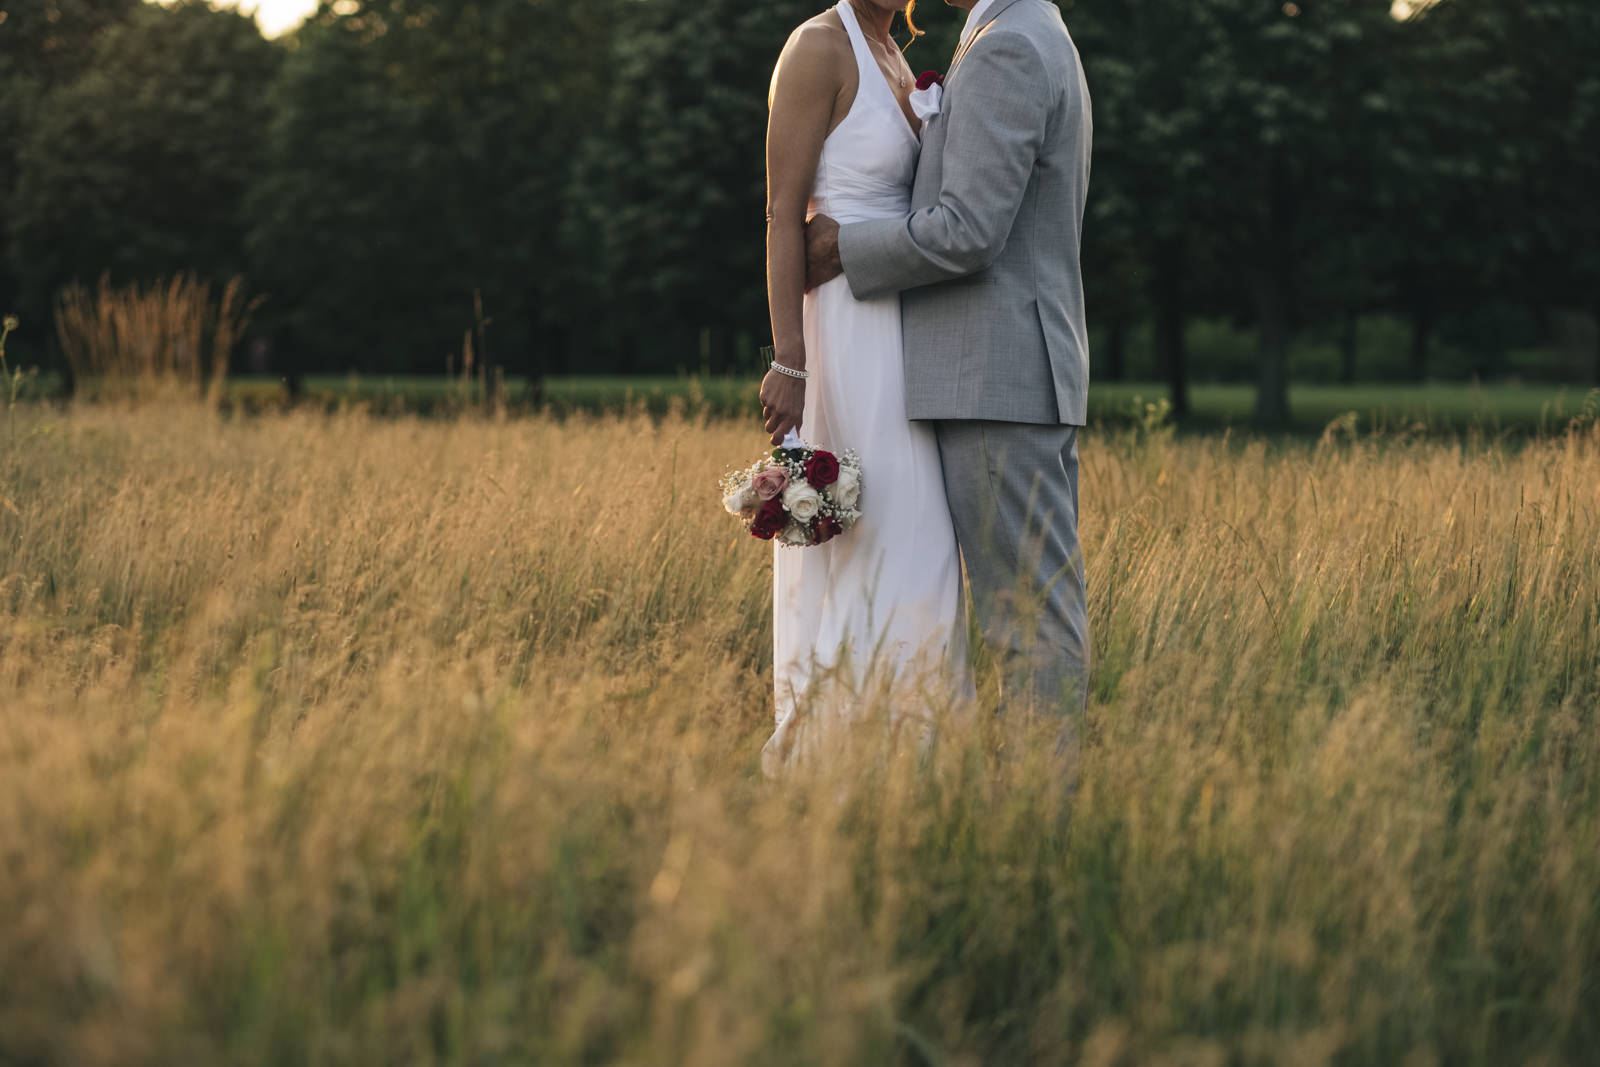 Bride and groom kiss in a field during golden hour in Ohio.